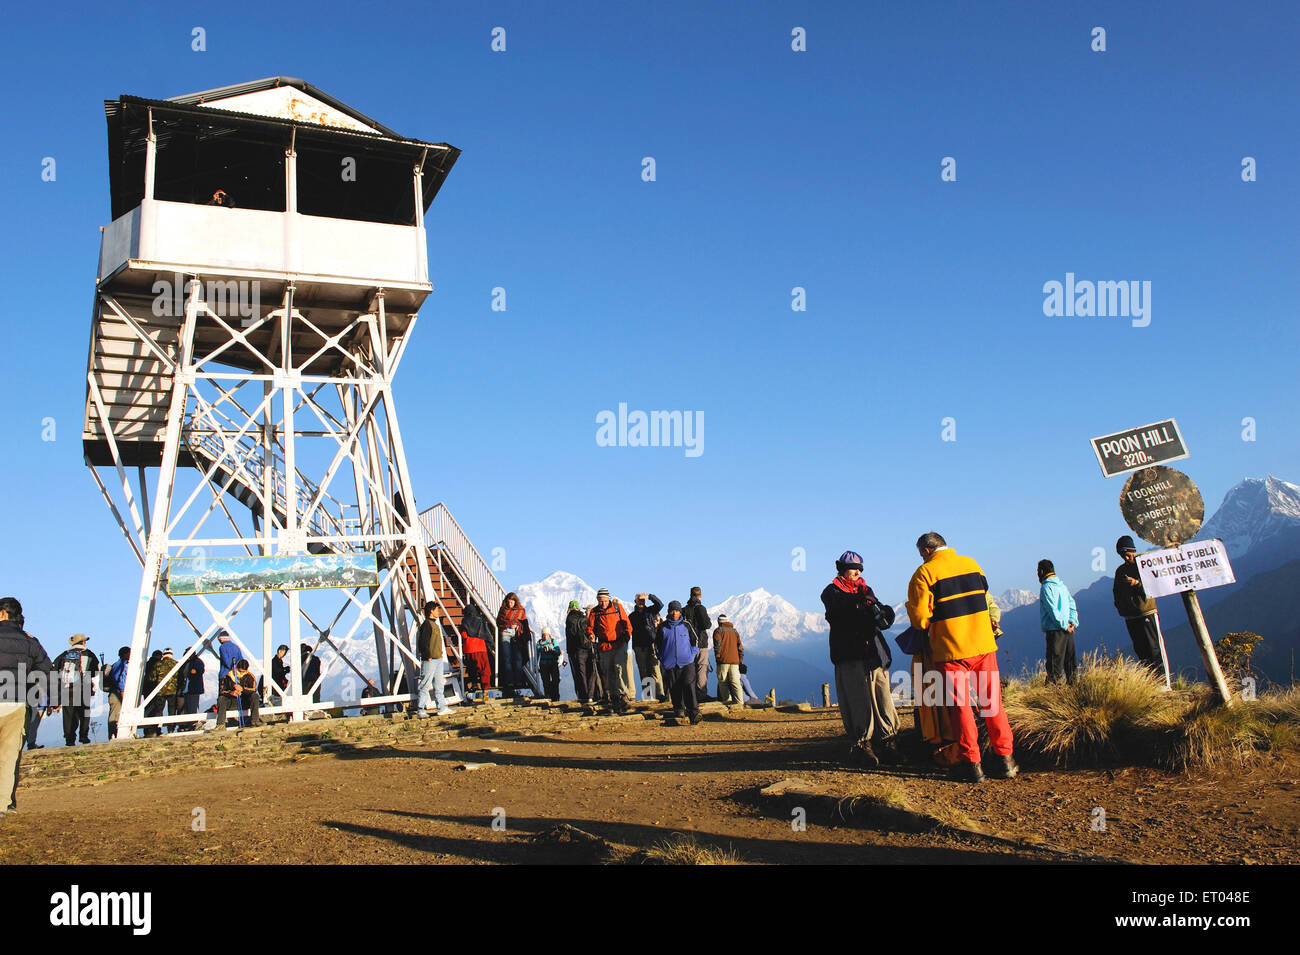 Trekkers at watch tower poon hill signboard ; Ghoripani ; Nepal - Stock Image